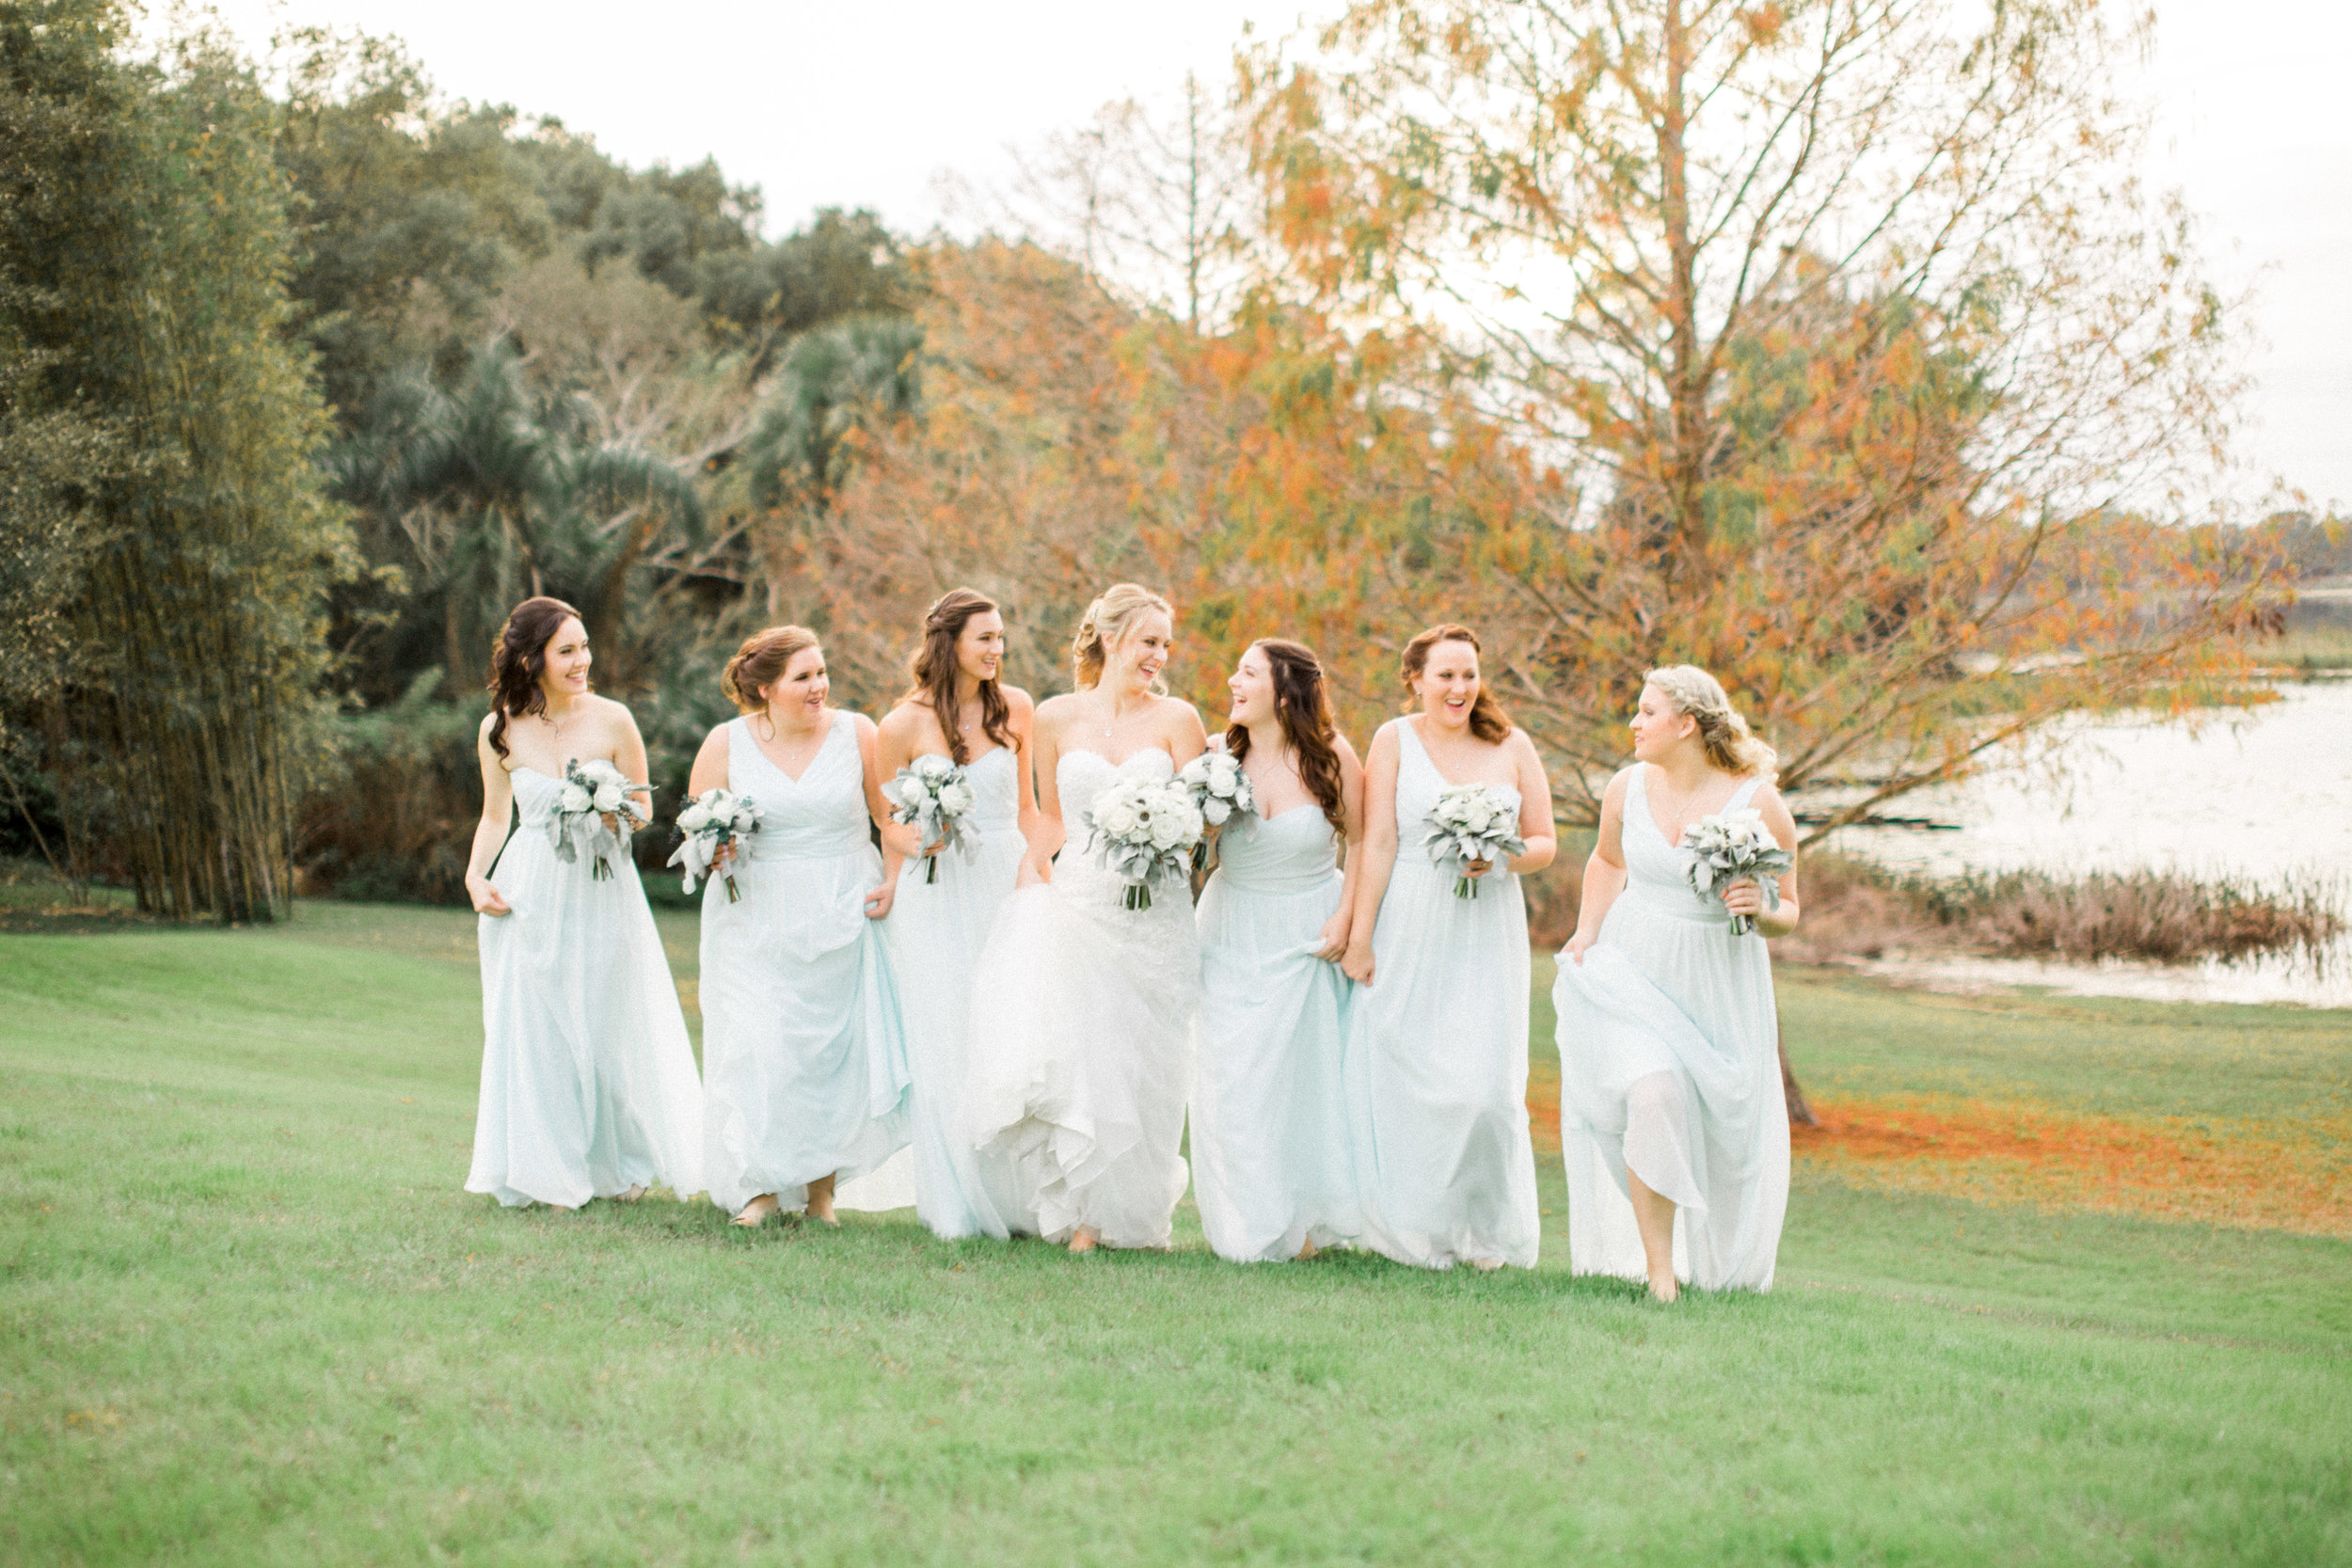 lake-mary-events-center-Florida-wedding-photos-bridesmaids